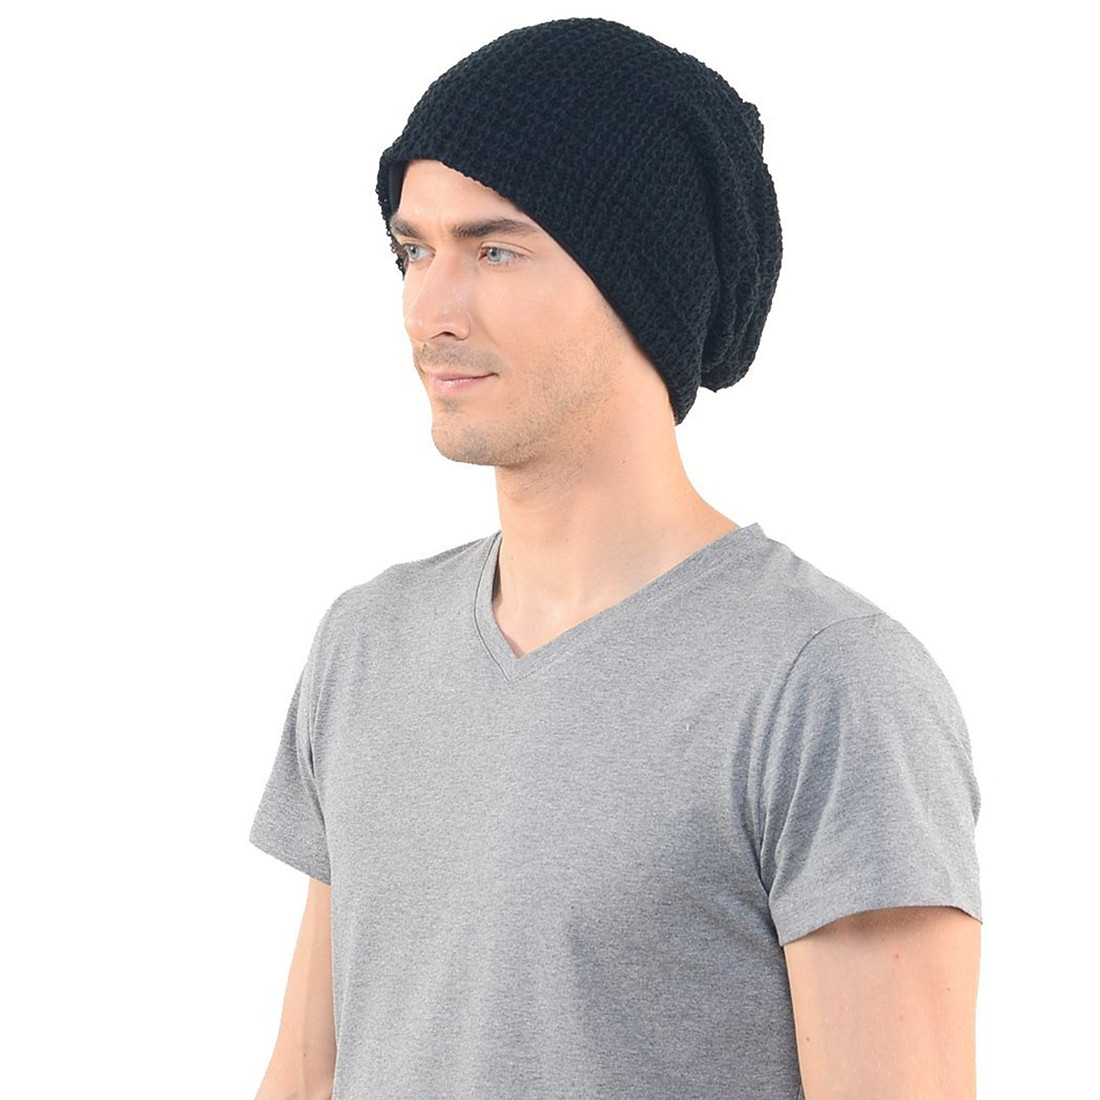 Luxury Mens Slouchy Long Beanie Knit Cap for Summer Winter Mens Knit Caps Of Delightful 41 Ideas Mens Knit Caps